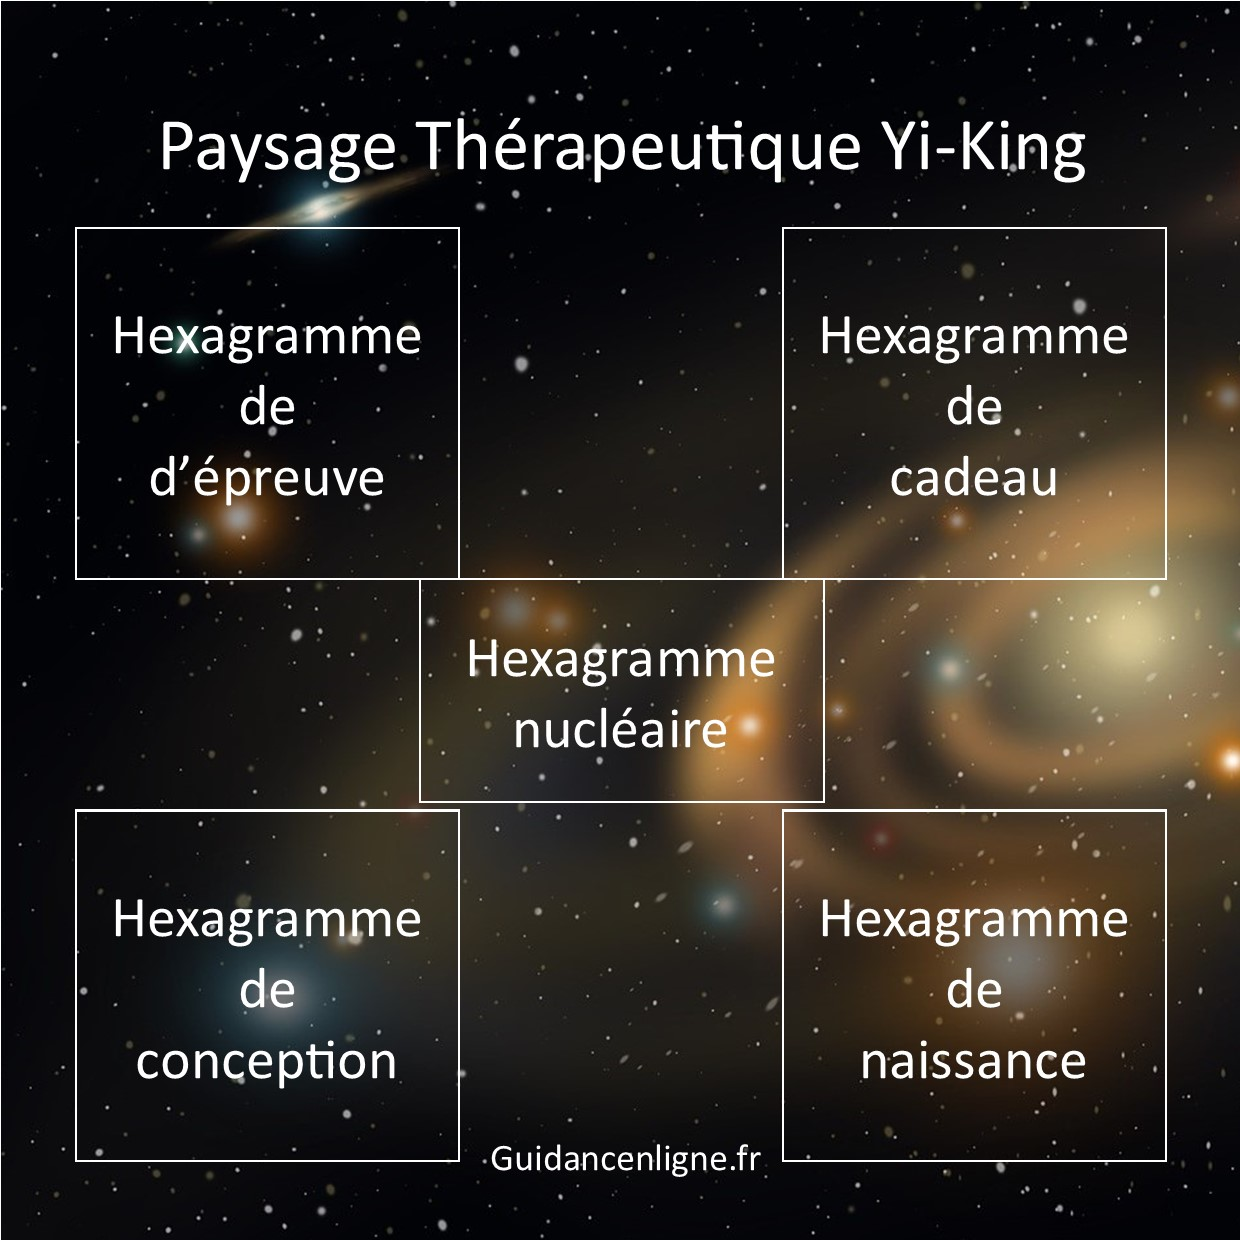 paysage-therapeutique-yi-king